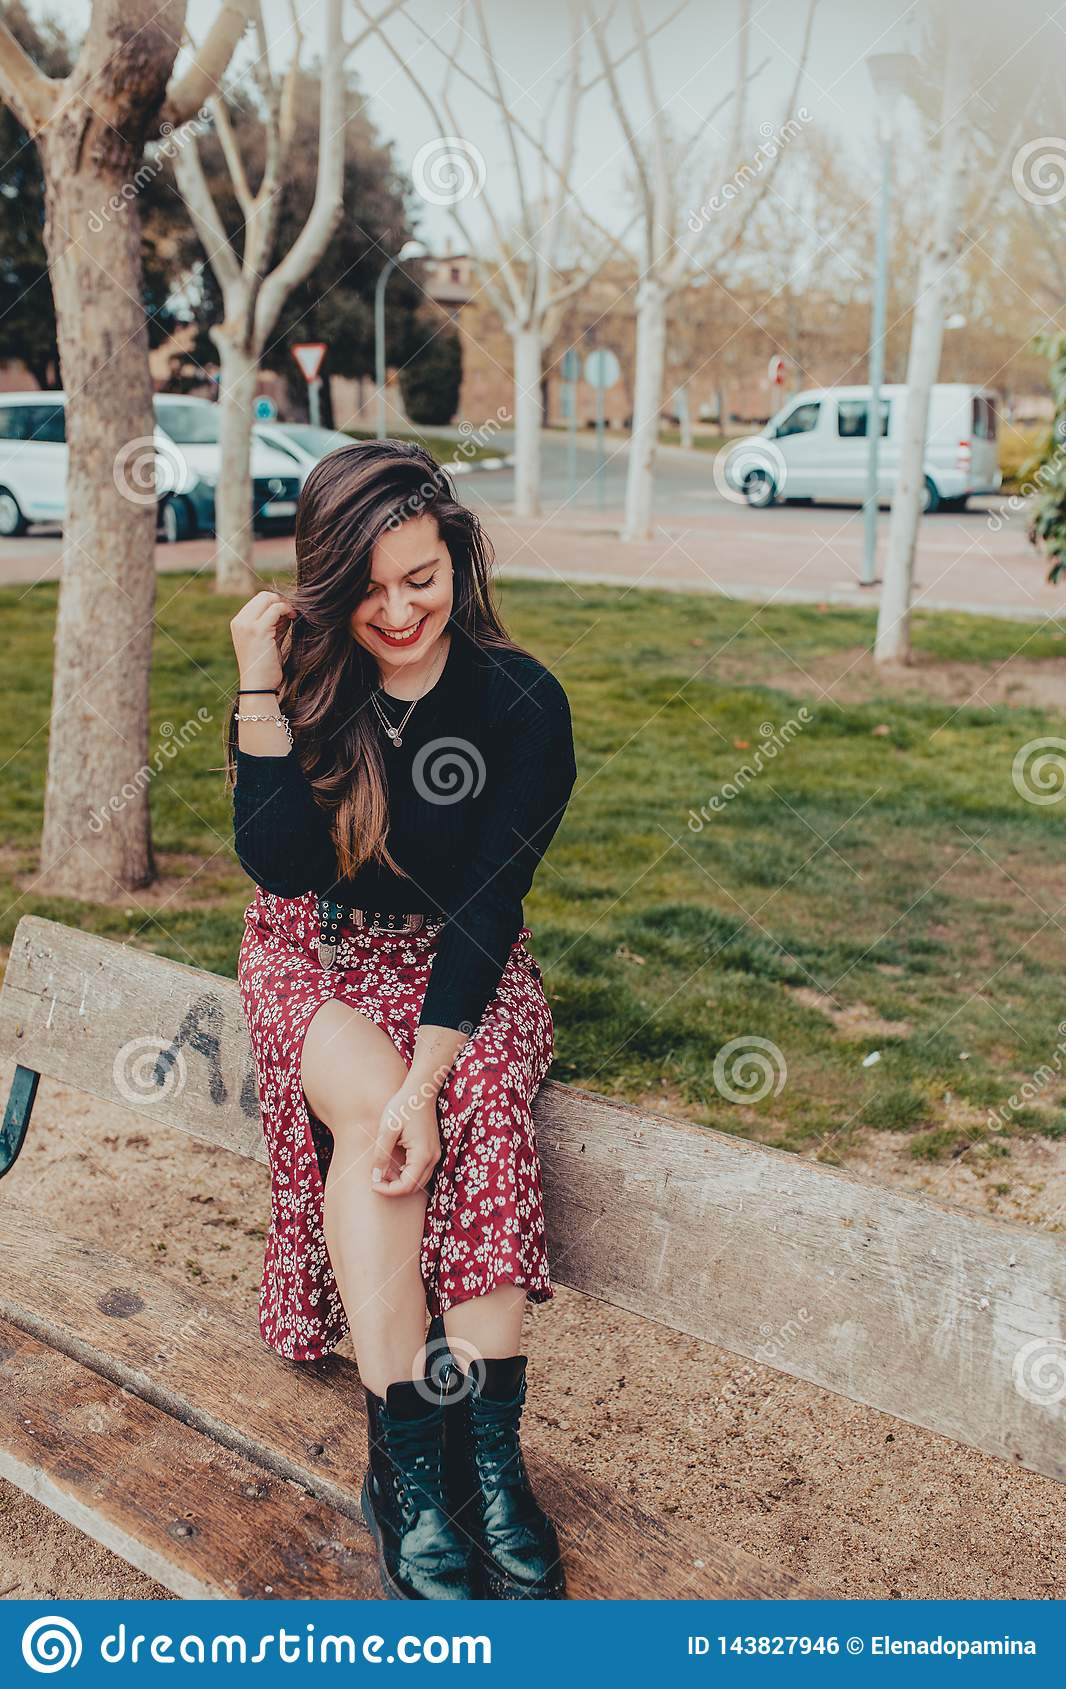 Fashionable young girl sitting on a bench laughing shyly